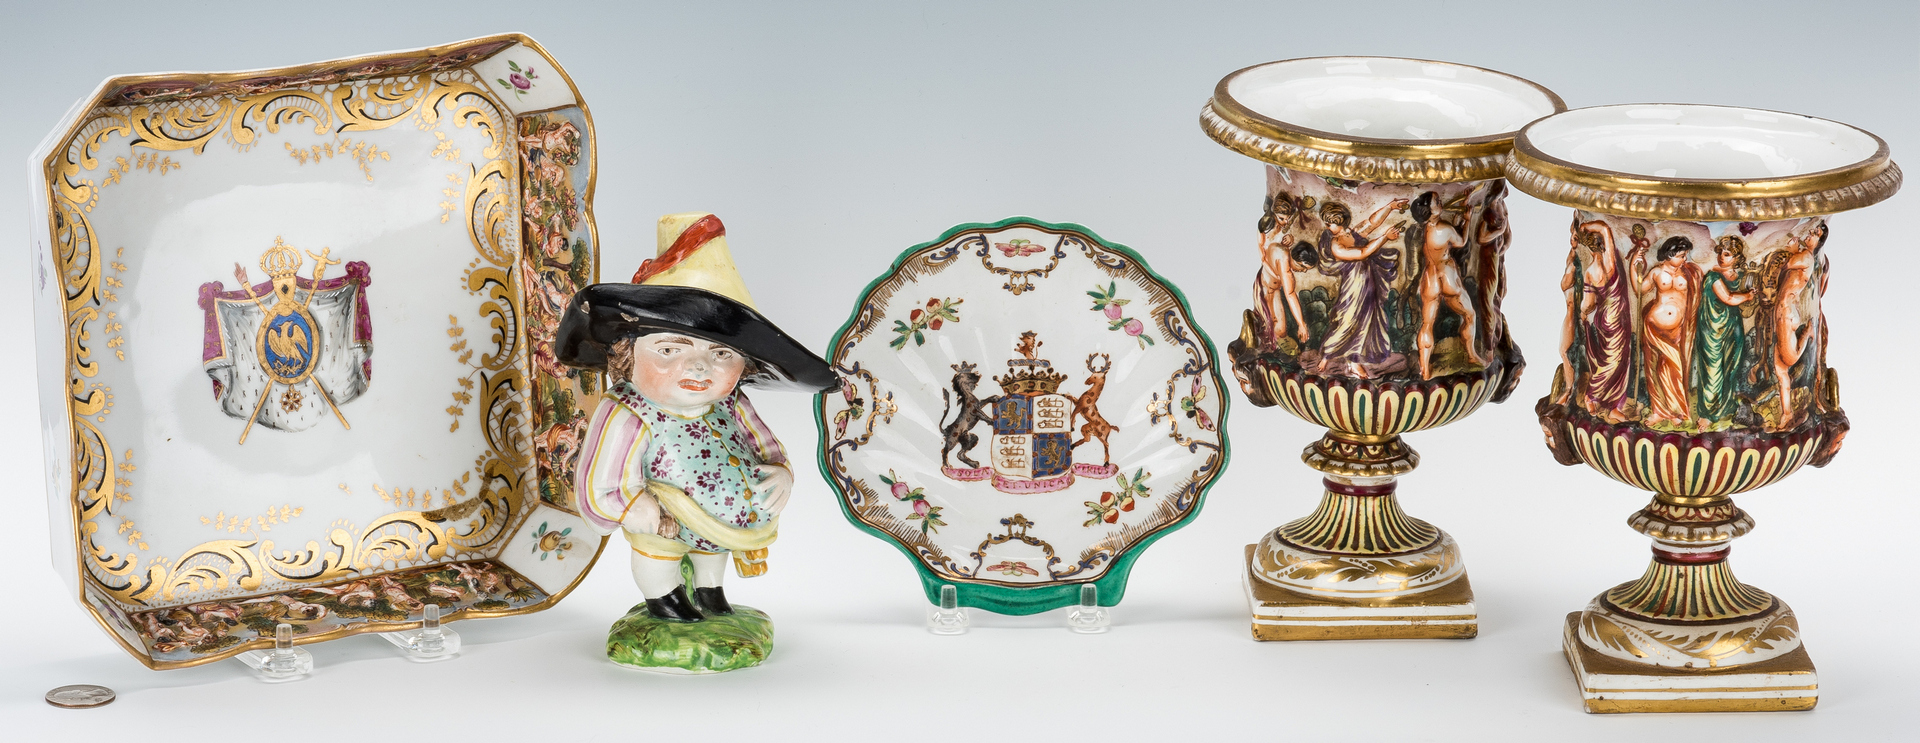 Lot 839: 5 European Porcelain Items inc. Armorial